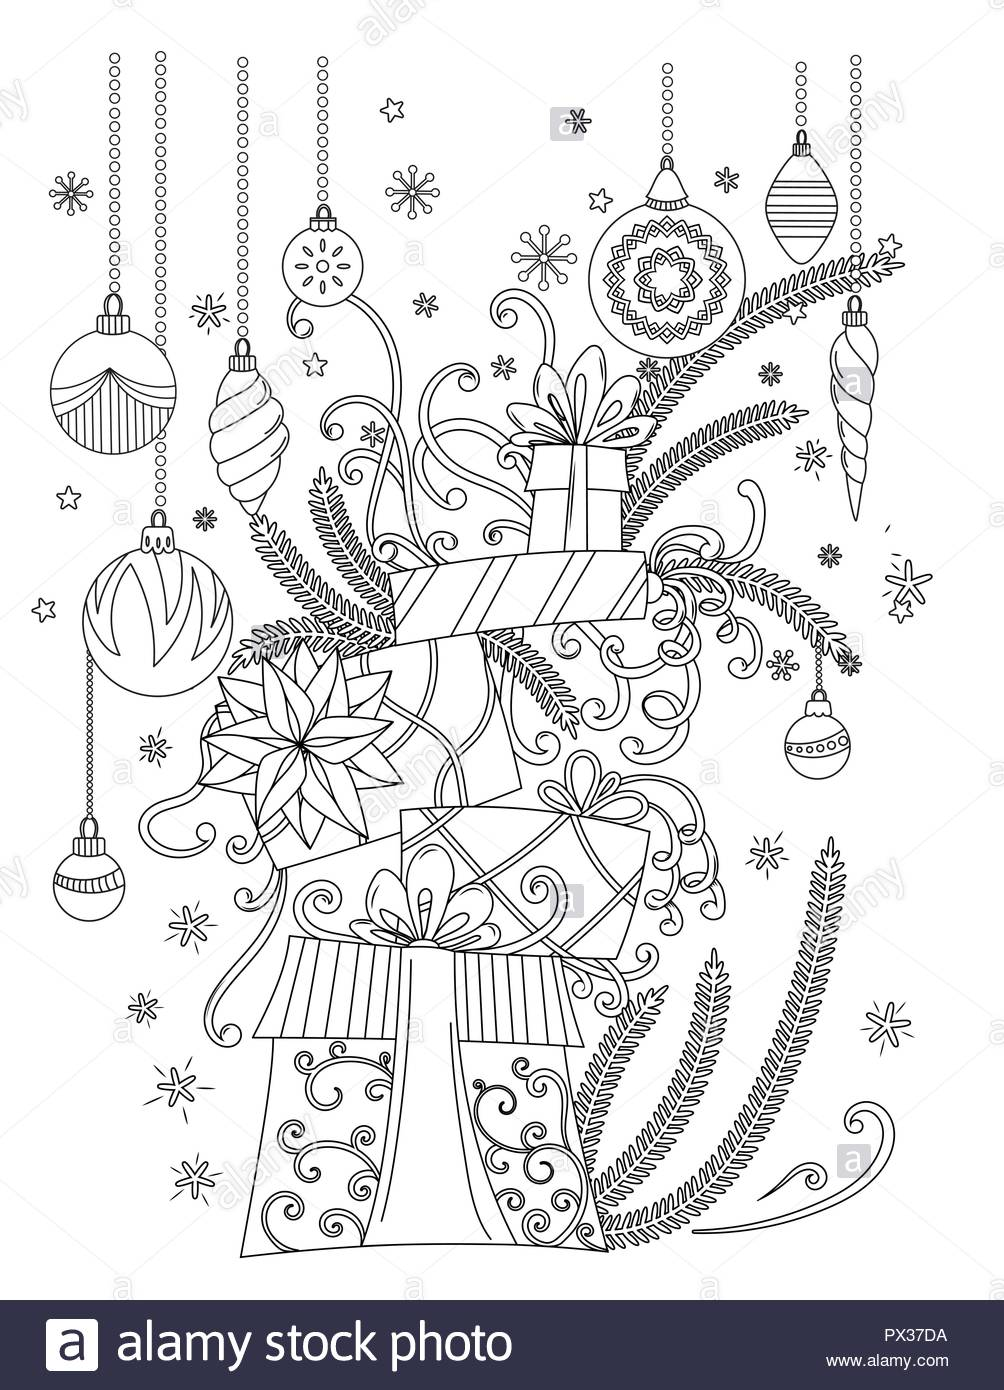 Christmas Coloring Pages Gifts With Book For Adults Pile Of Holiday